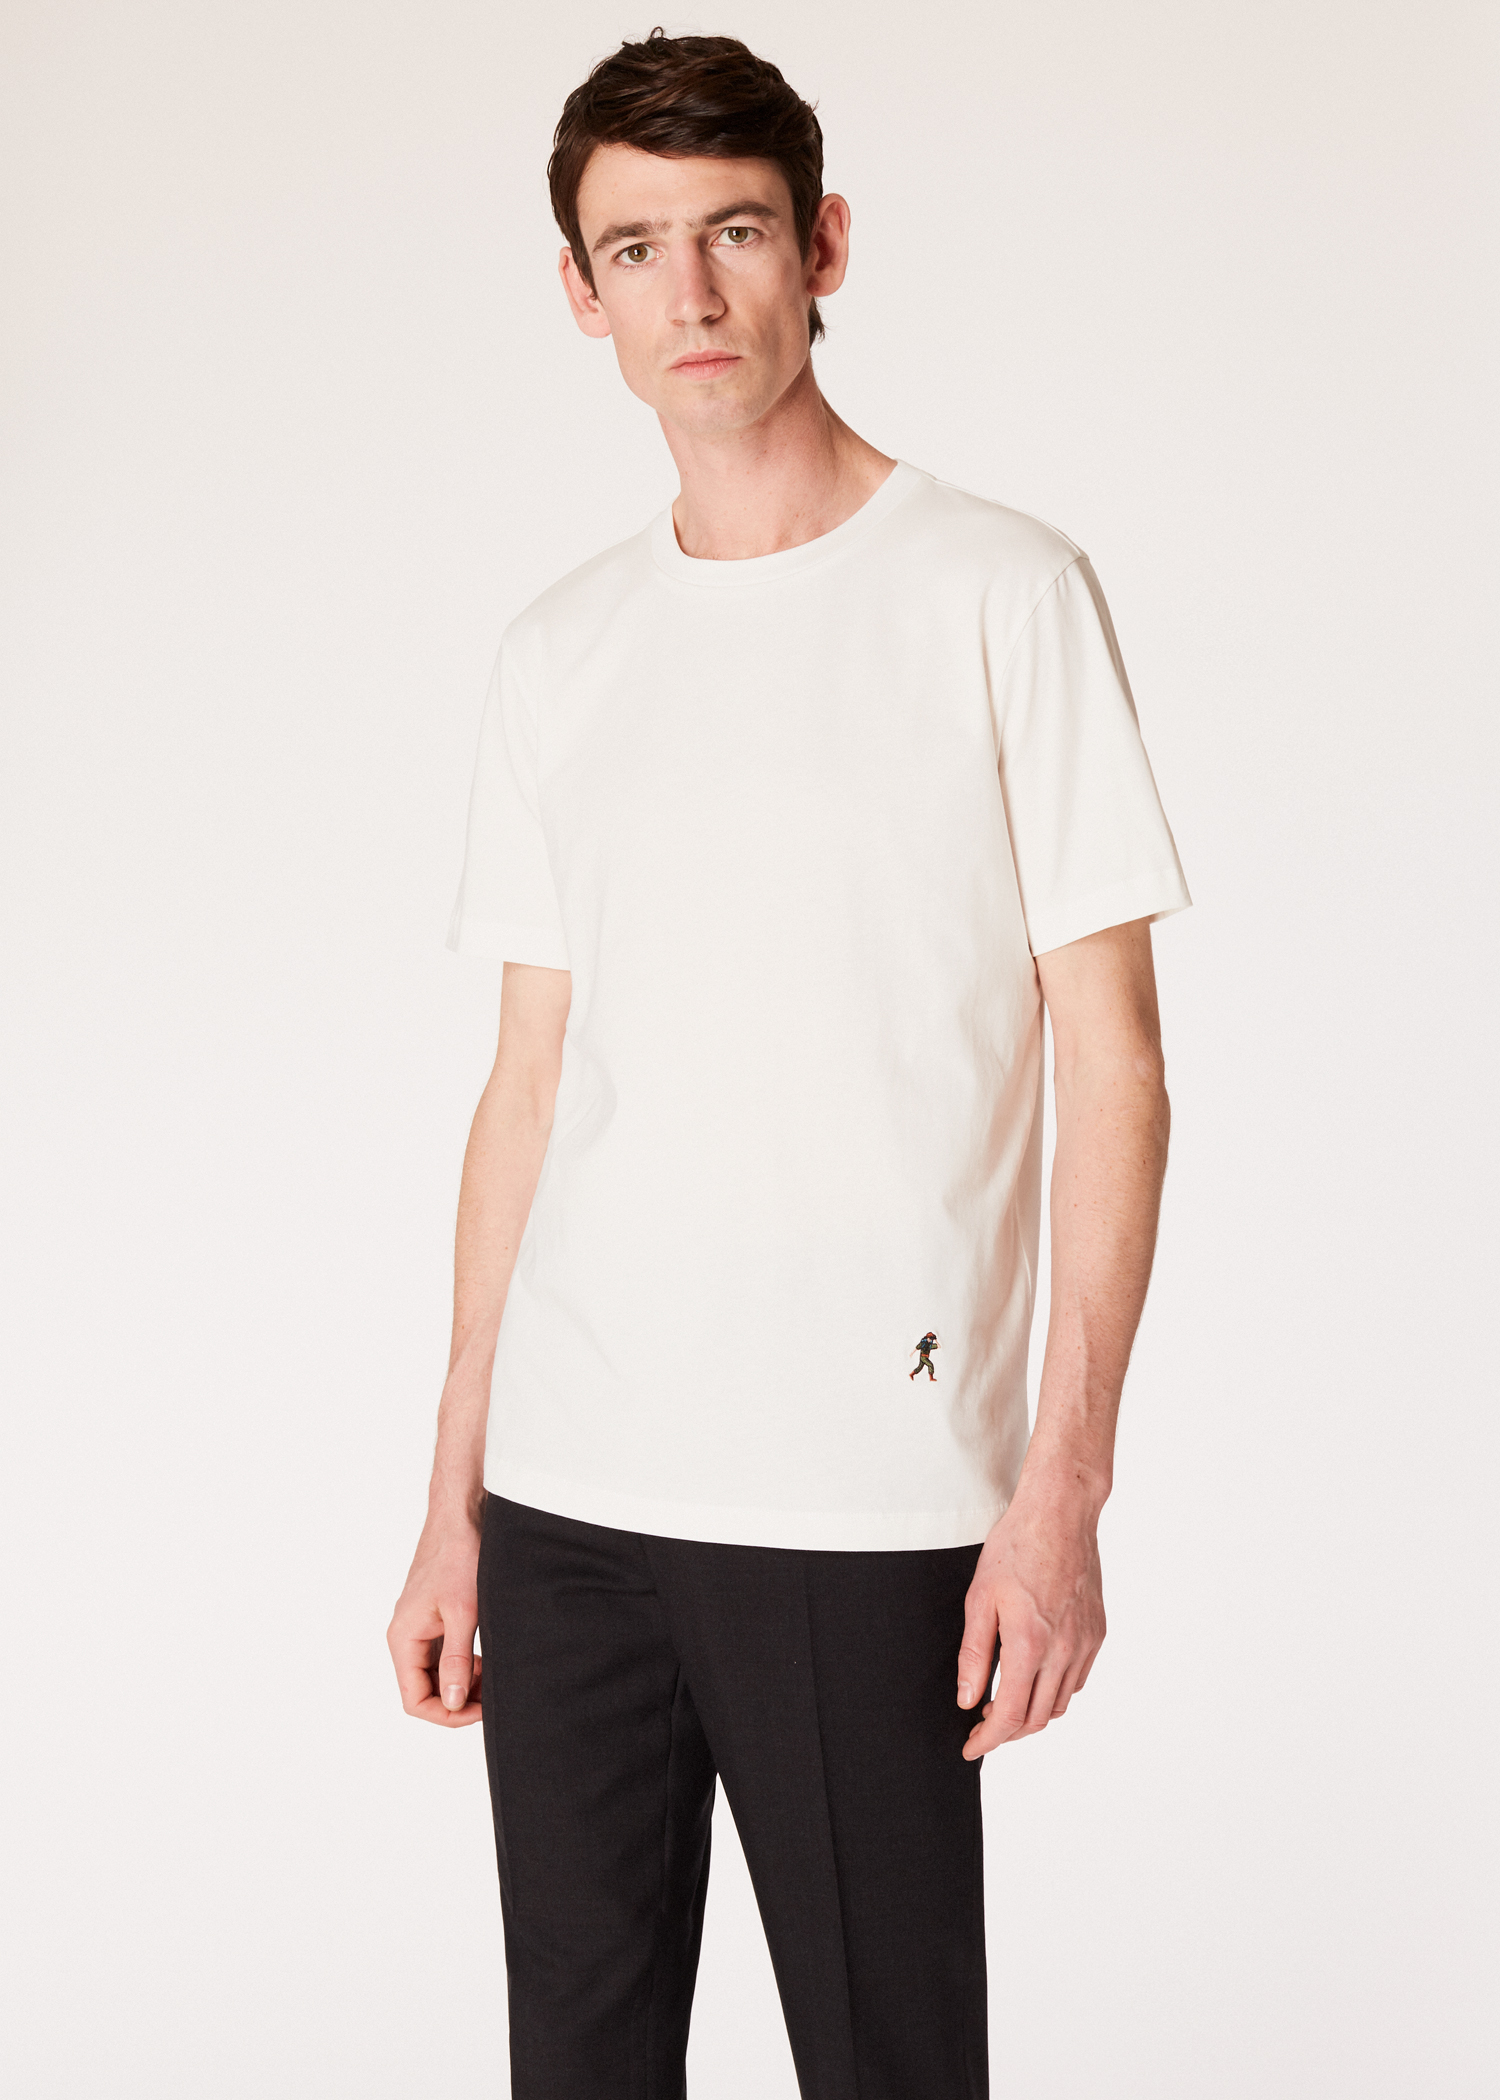 59410ac58 Men's Slim-Fit White T-Shirt With 'People' Motif Embroidery - Paul Smith